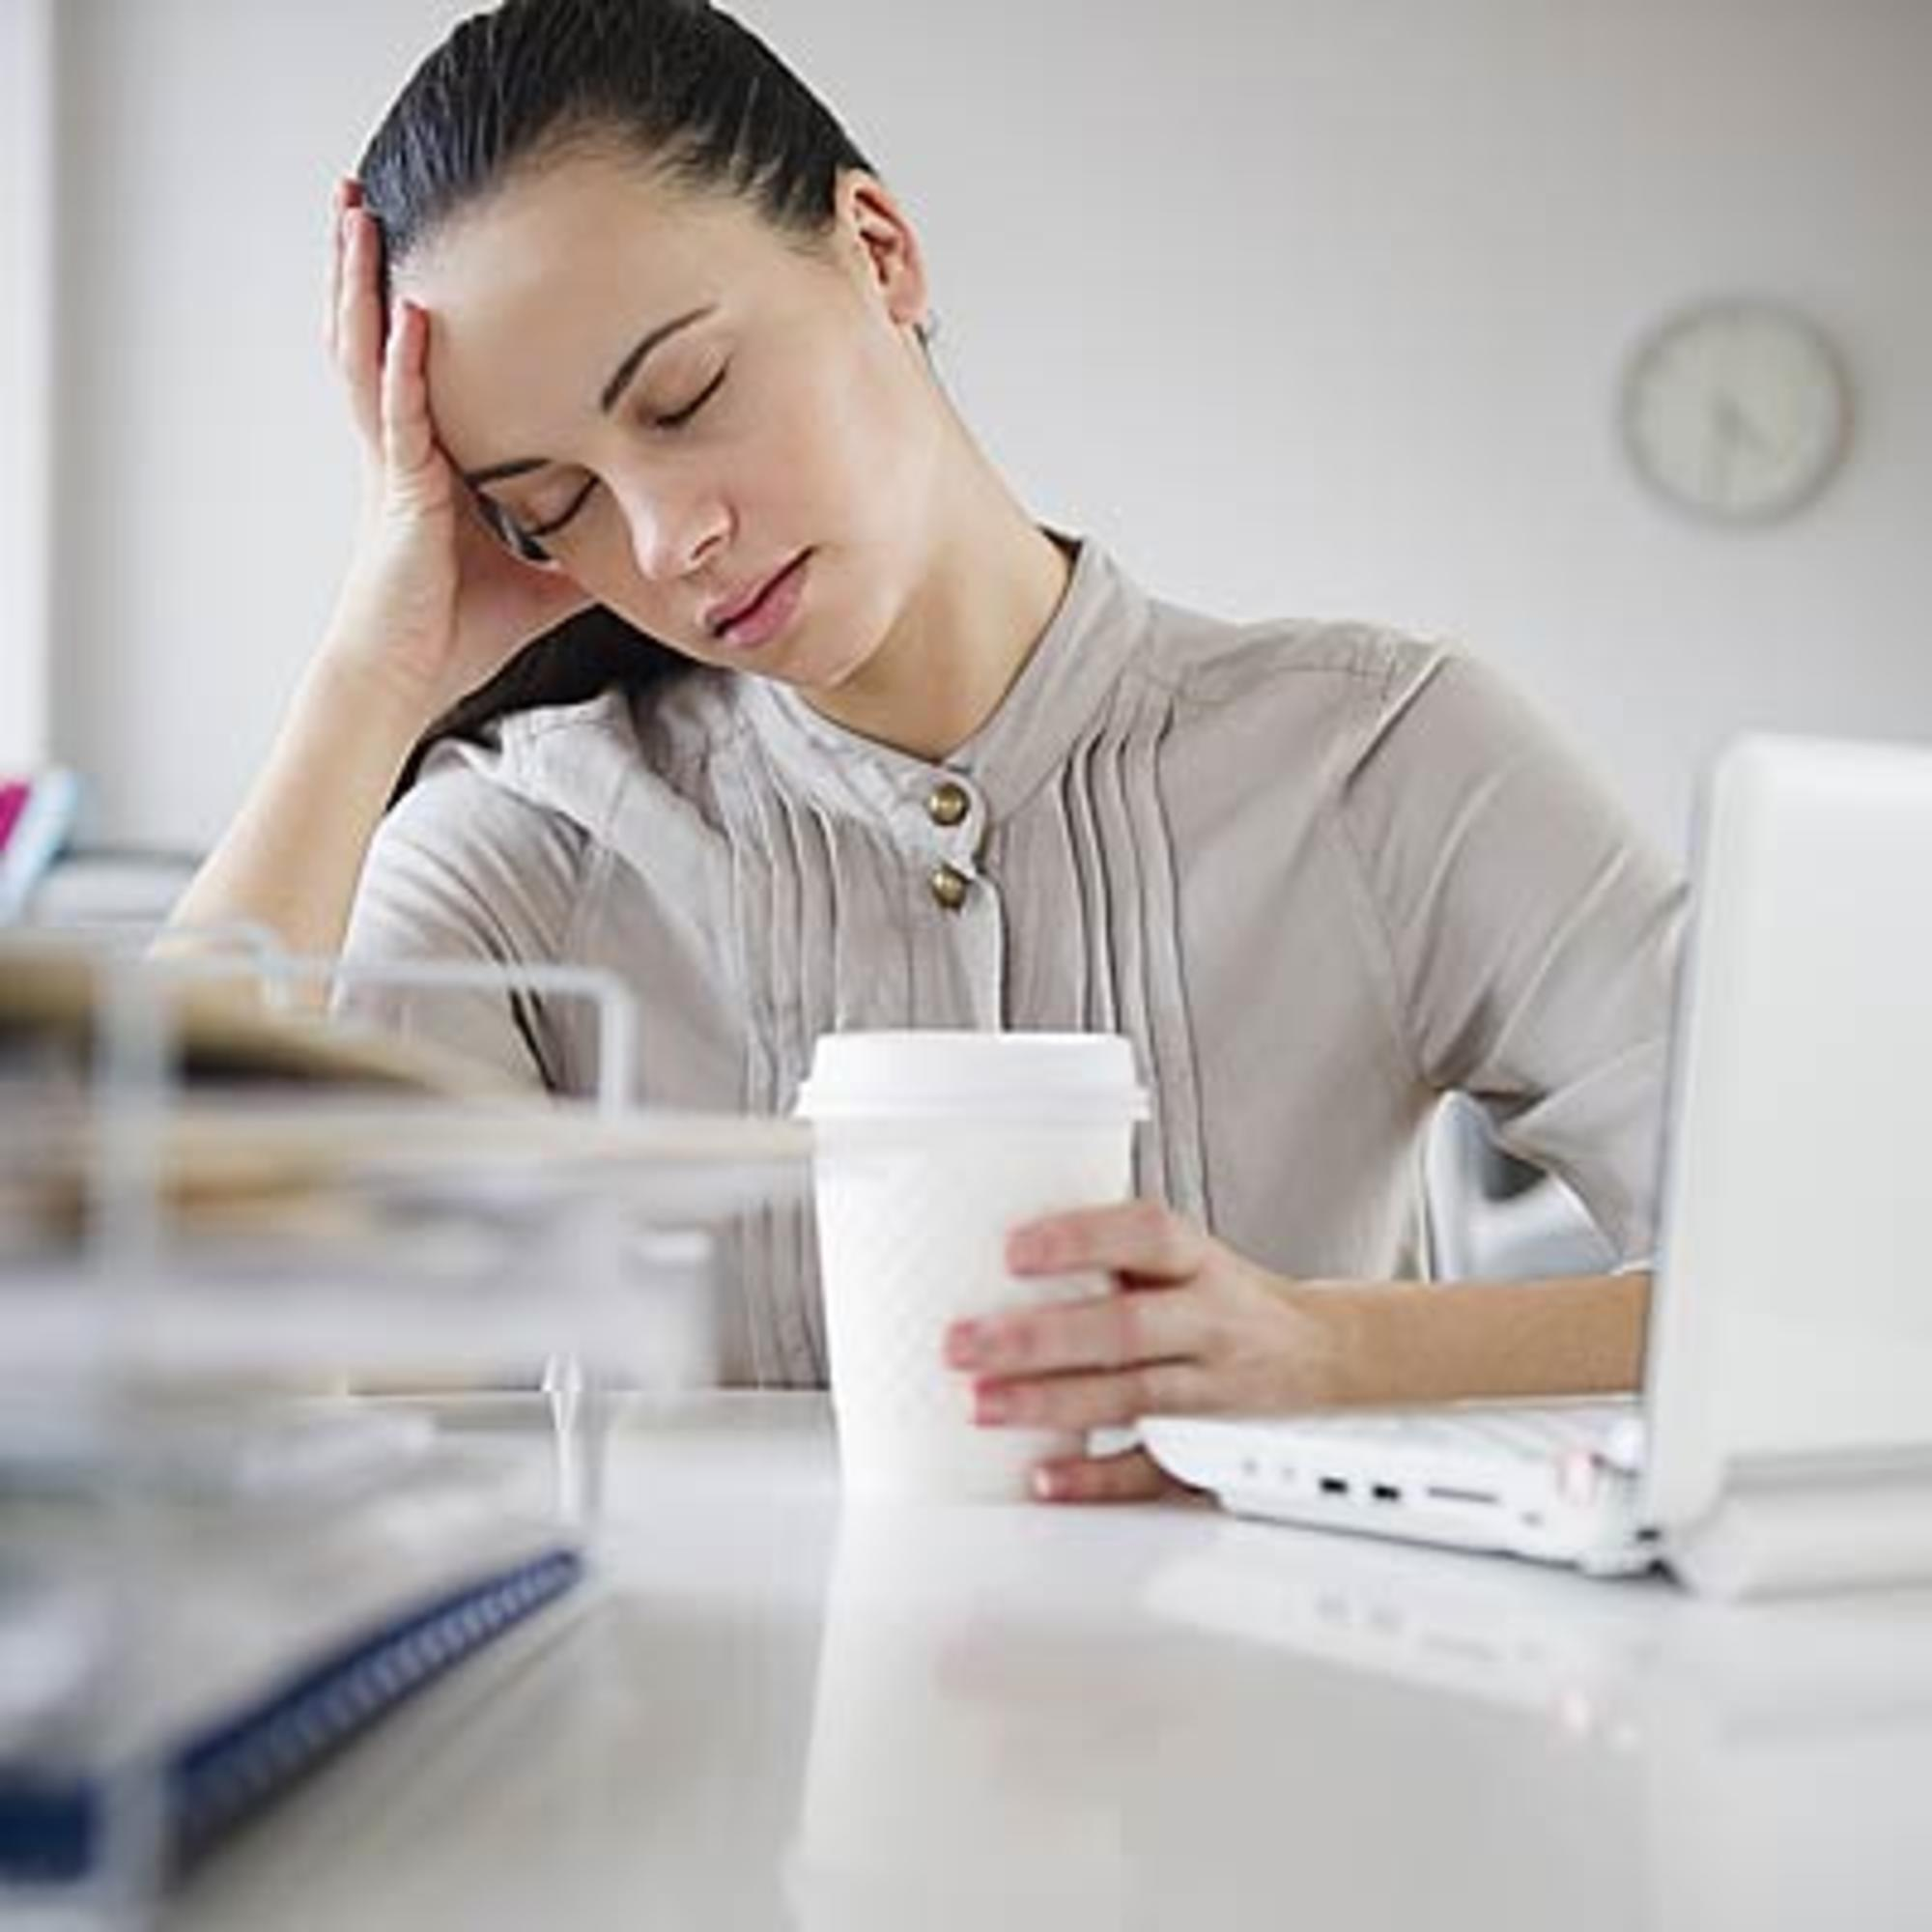 Healthy Habits That Can Give You Headaches